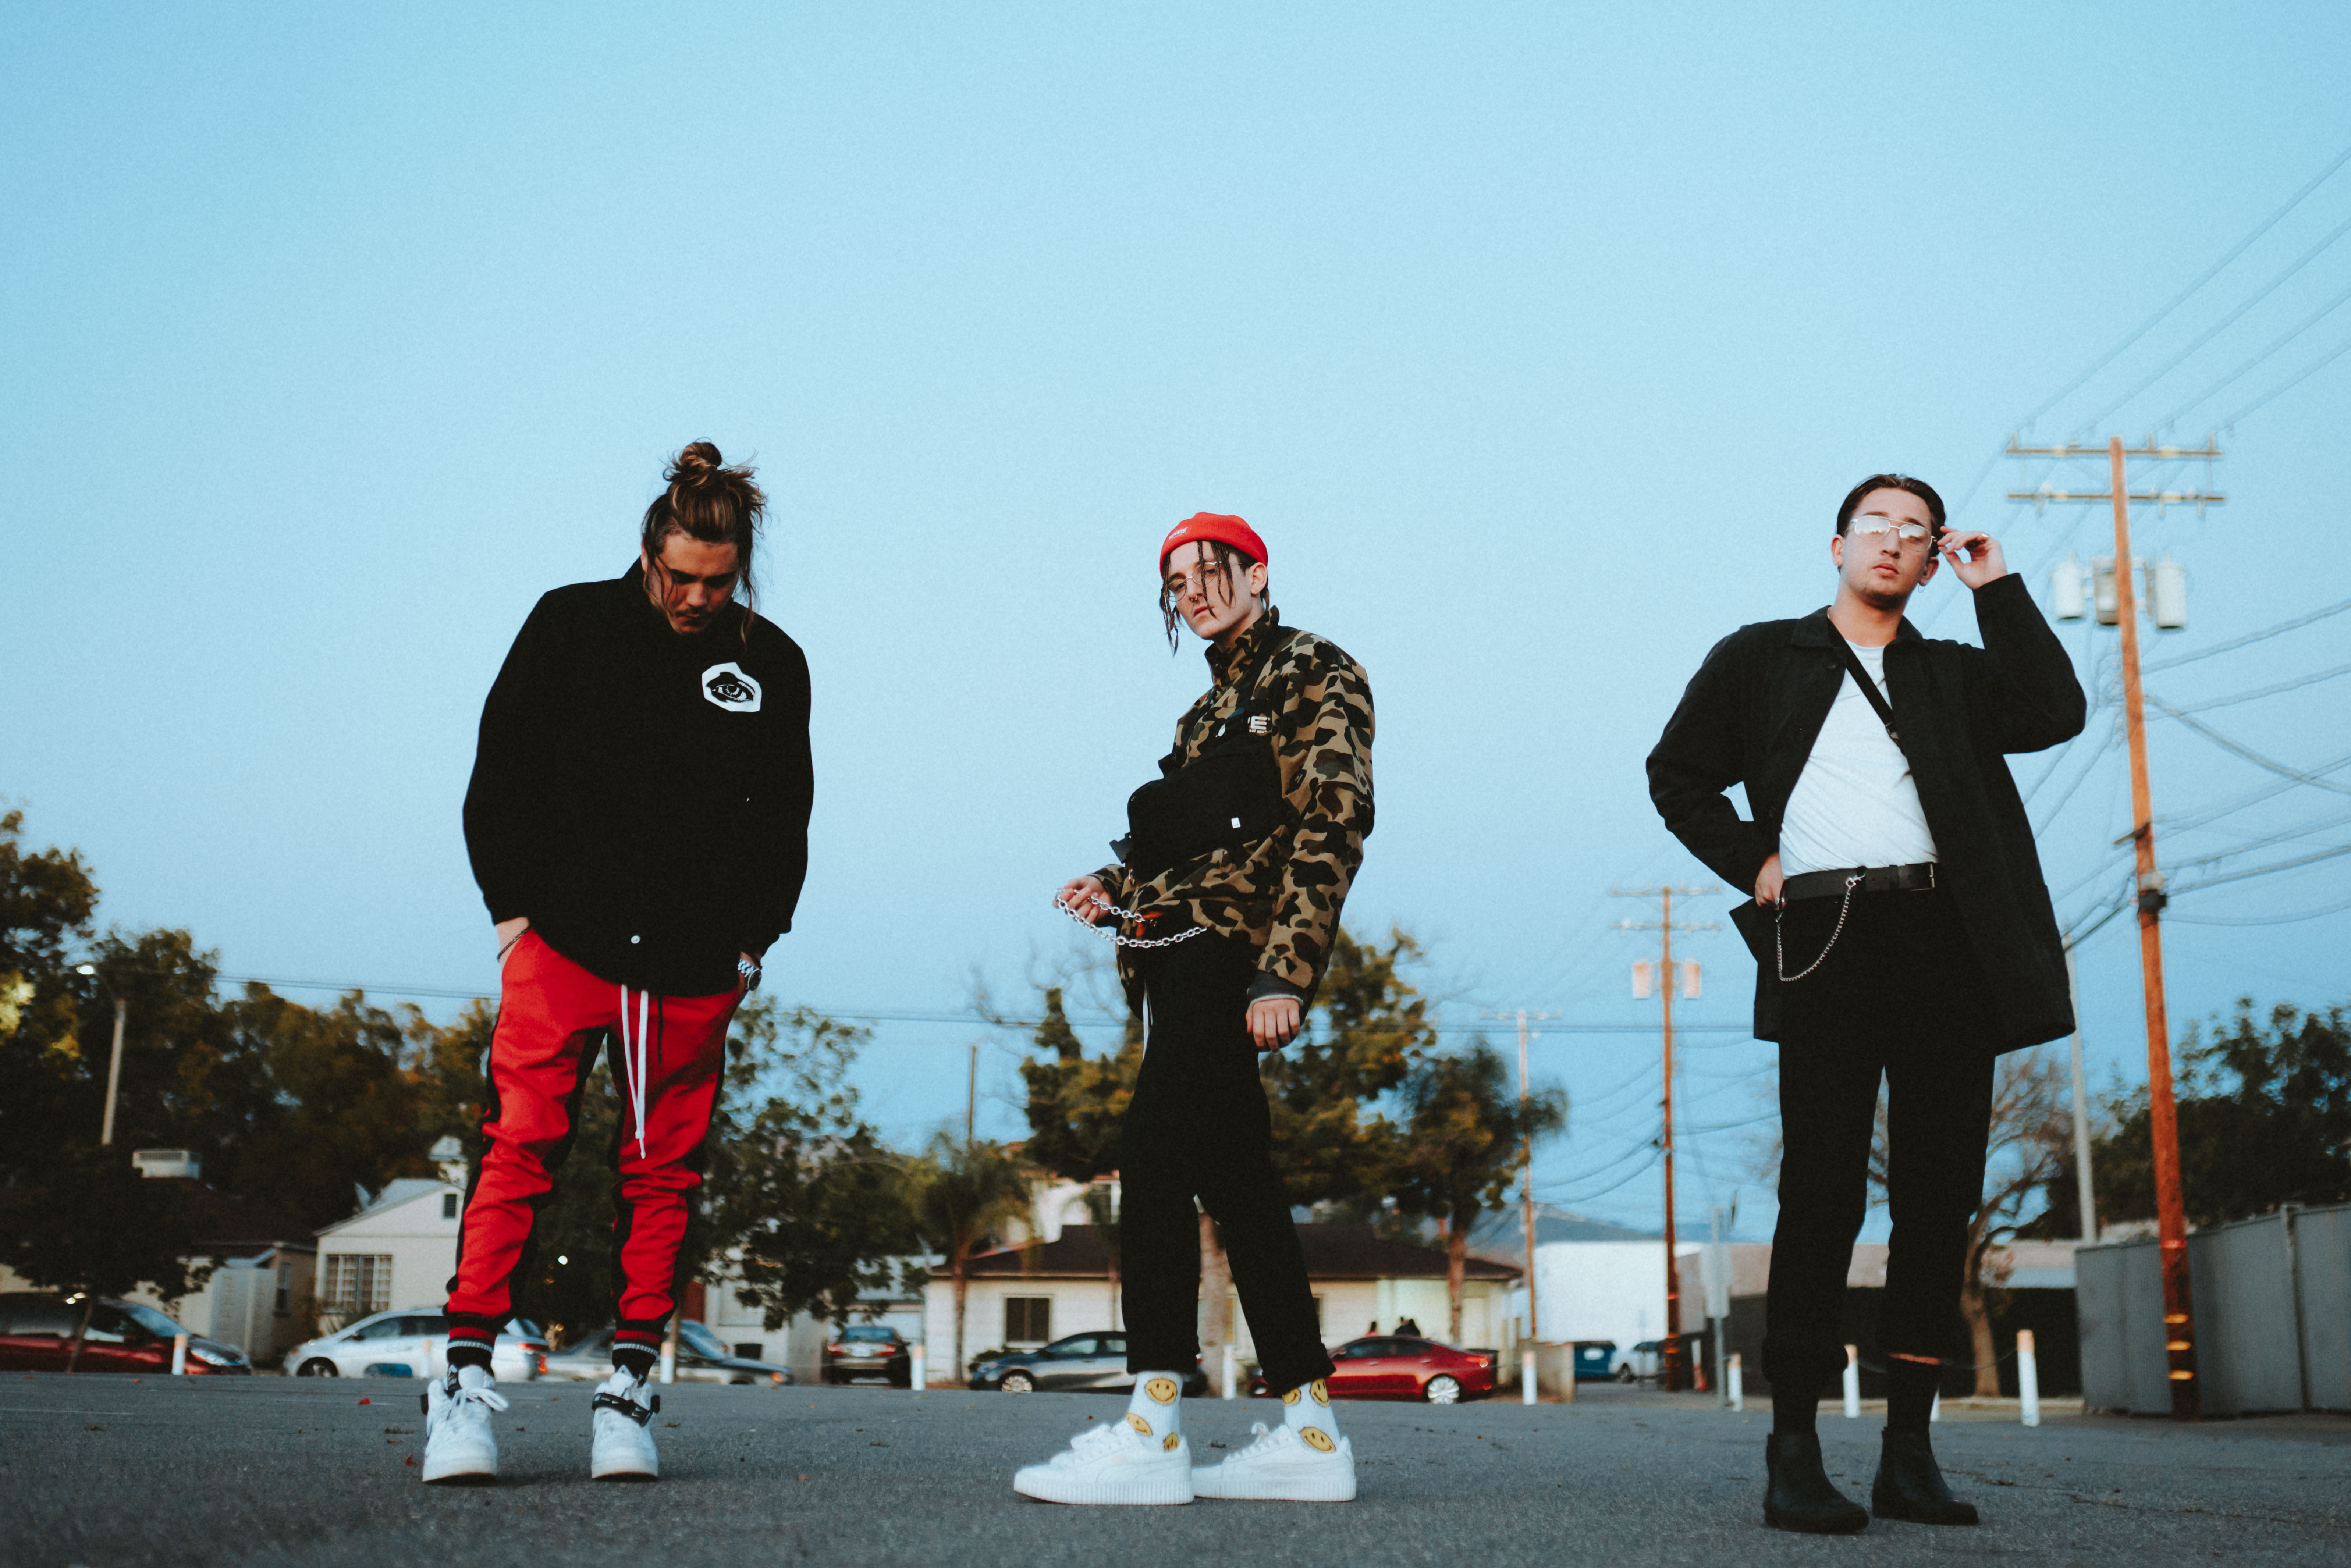 Chase Atlantic goes through 'Phases' and finds deeper parts of themselves